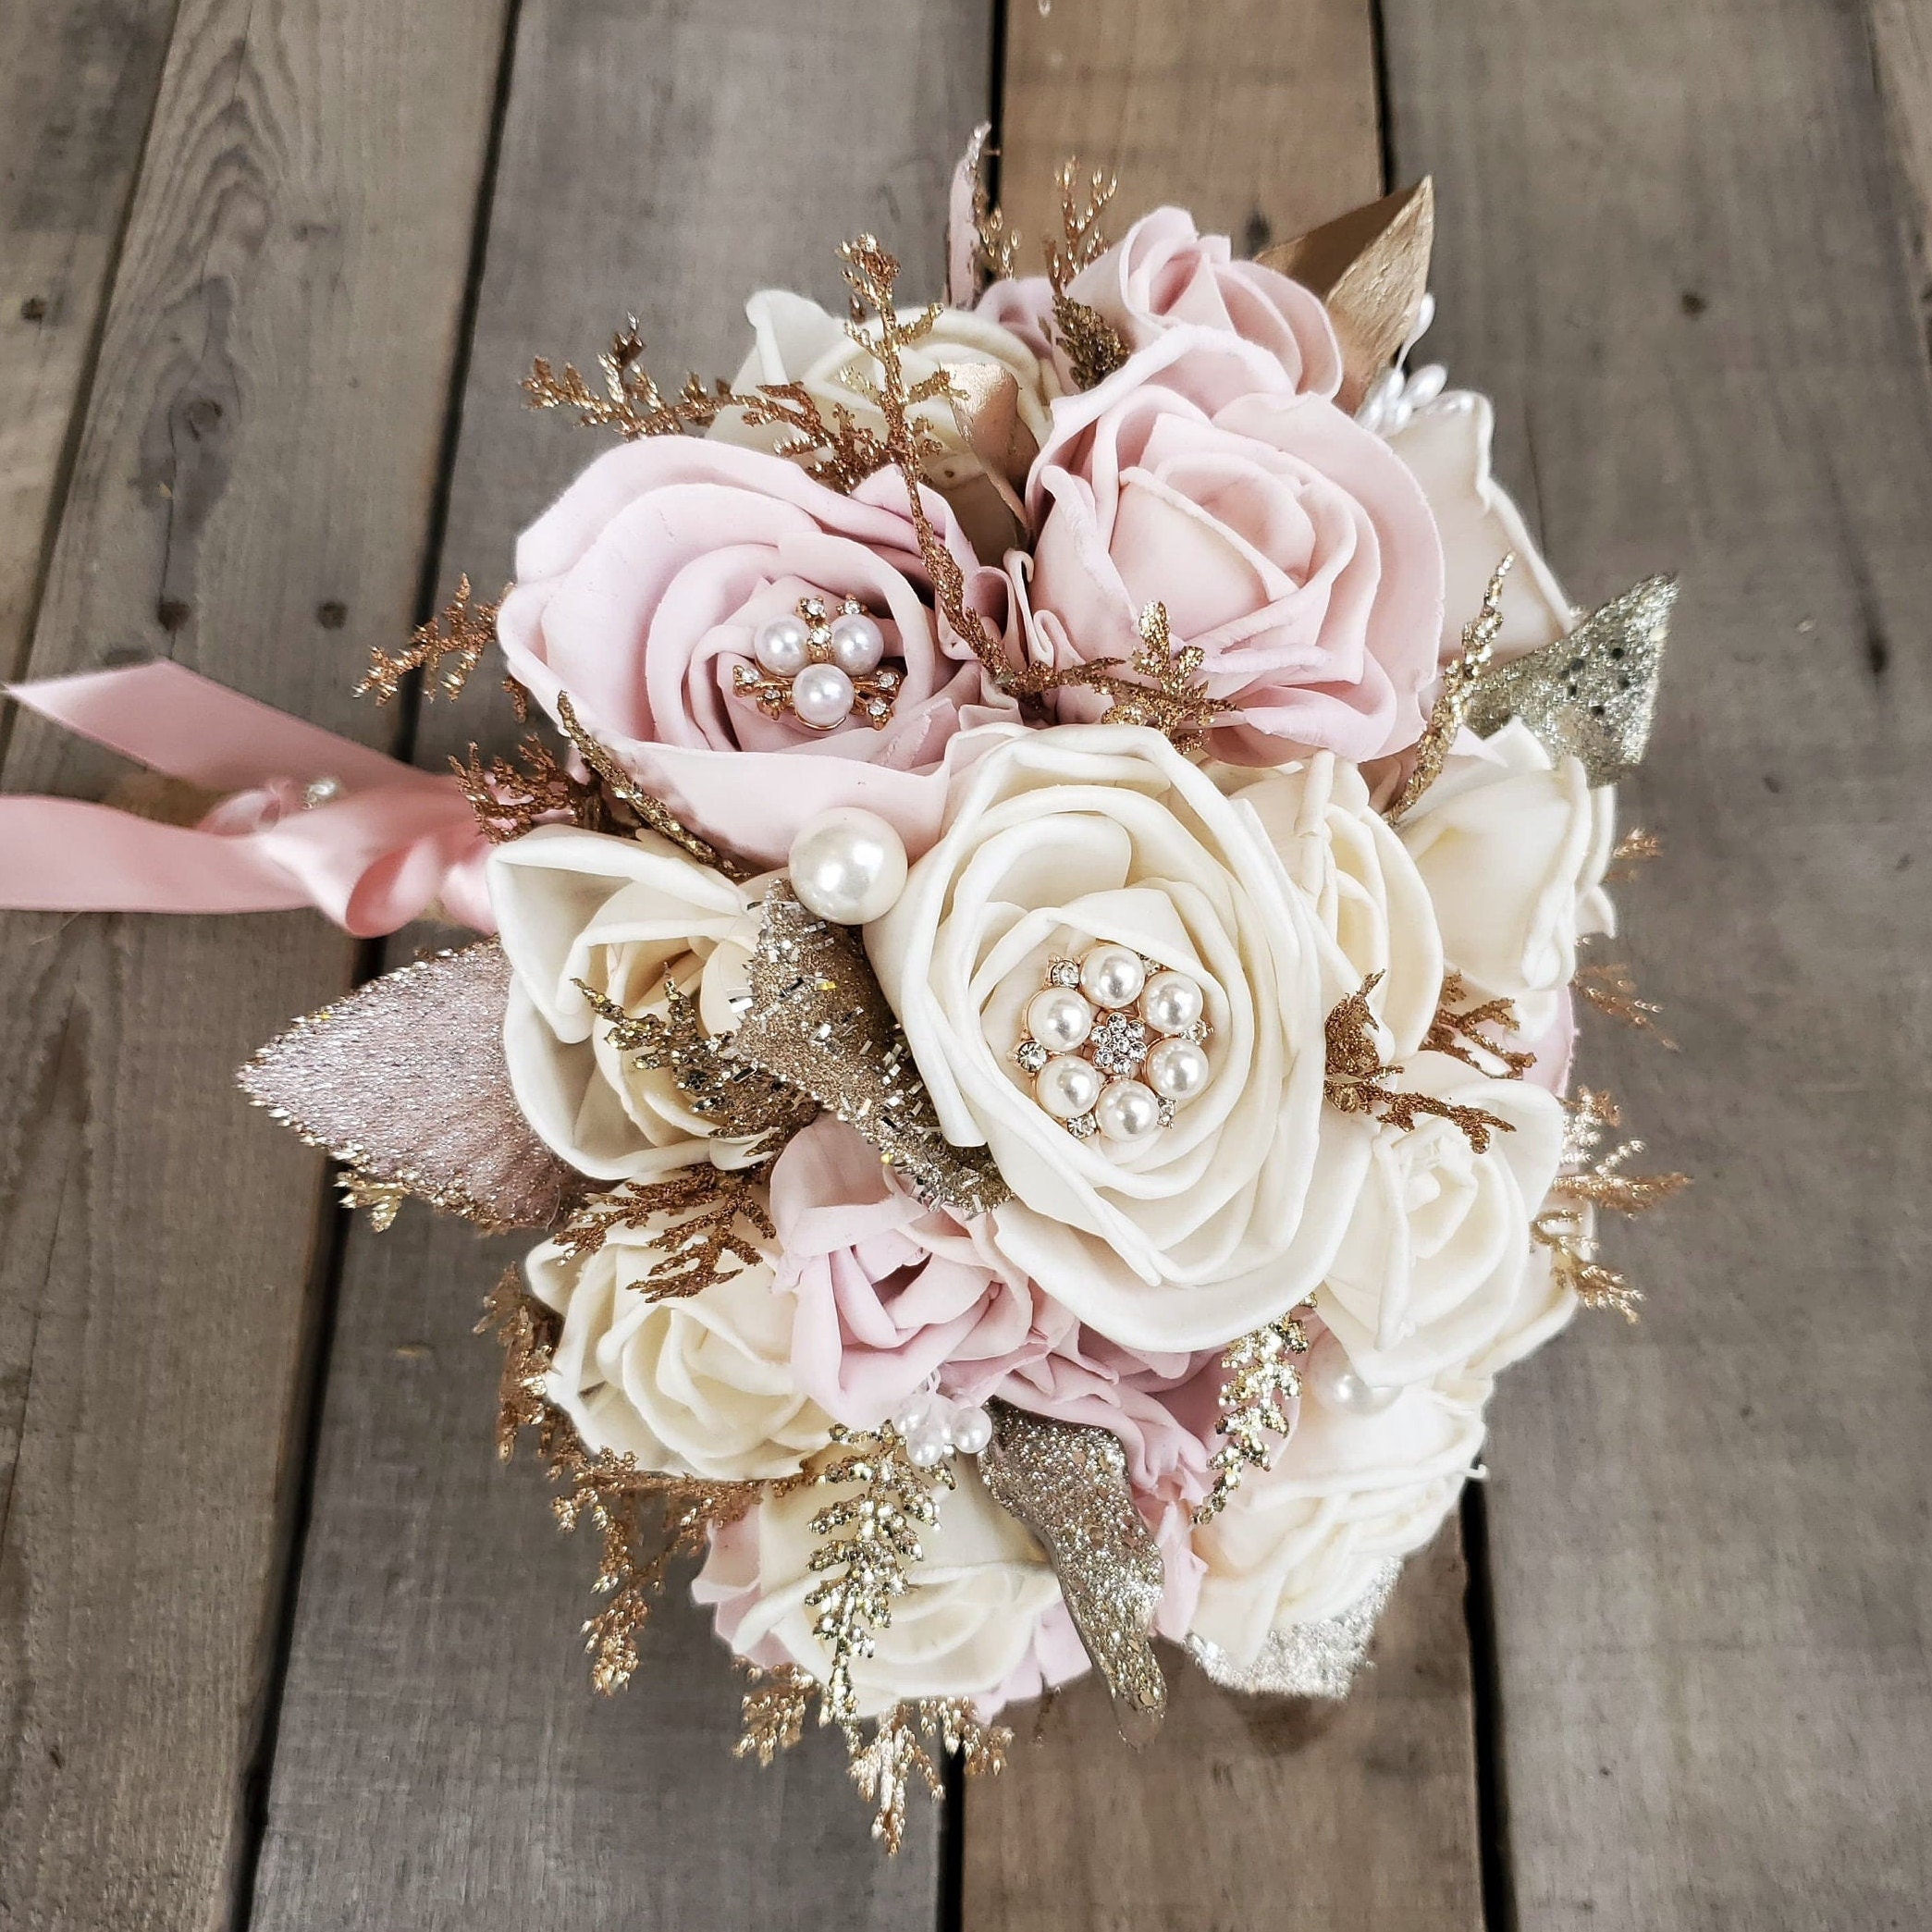 All Wood Rose Bouquet In Cream And Light Pink With Optional Feathers Brooches And Glitter Bridal Bouquet Bridesmaid Quinceanera